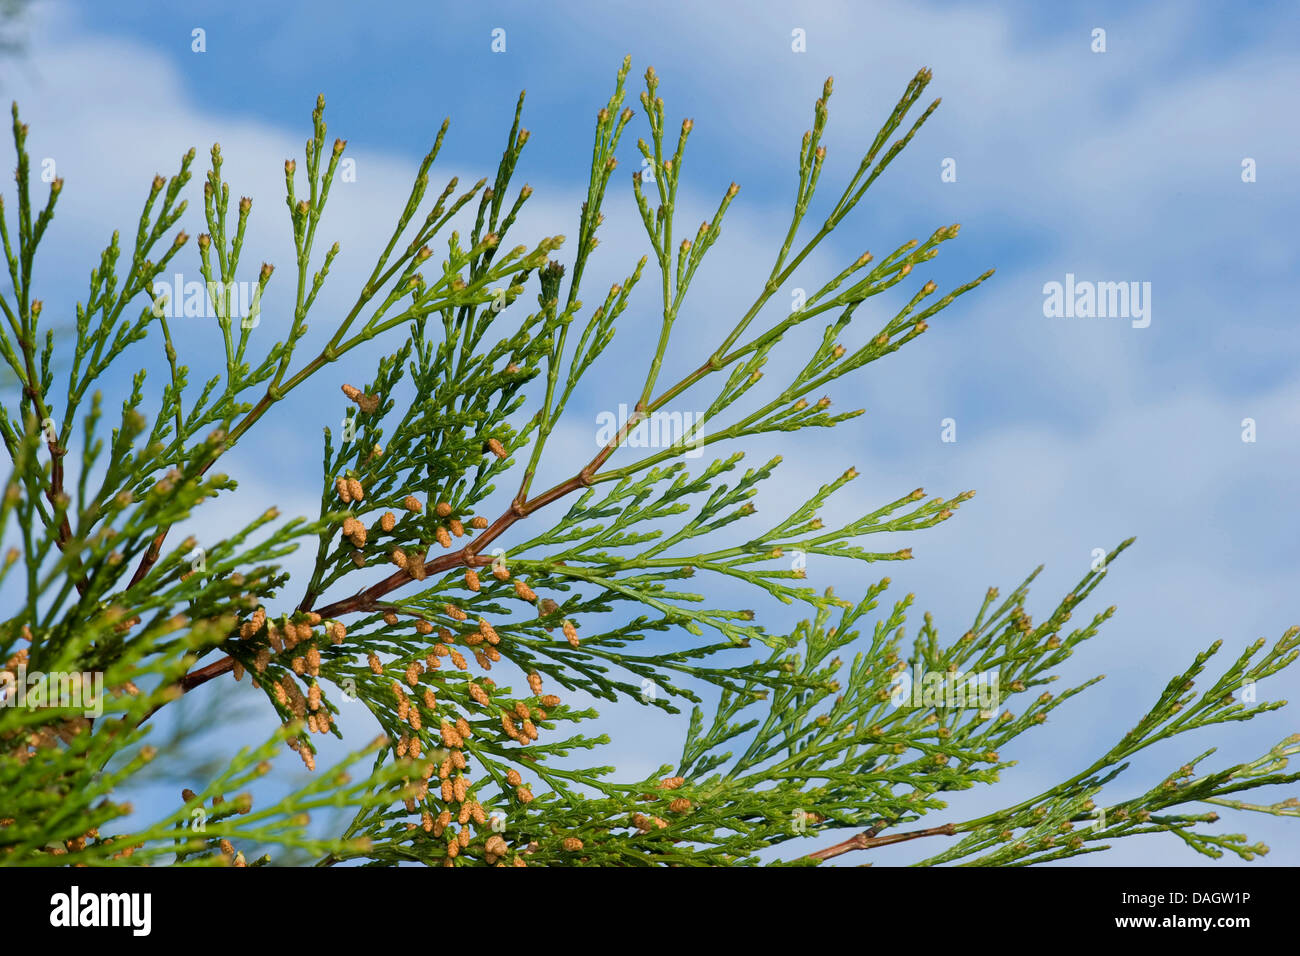 incense cedar, Californian white cedar (Calocedrus decurrens), branch with male flowers - Stock Image